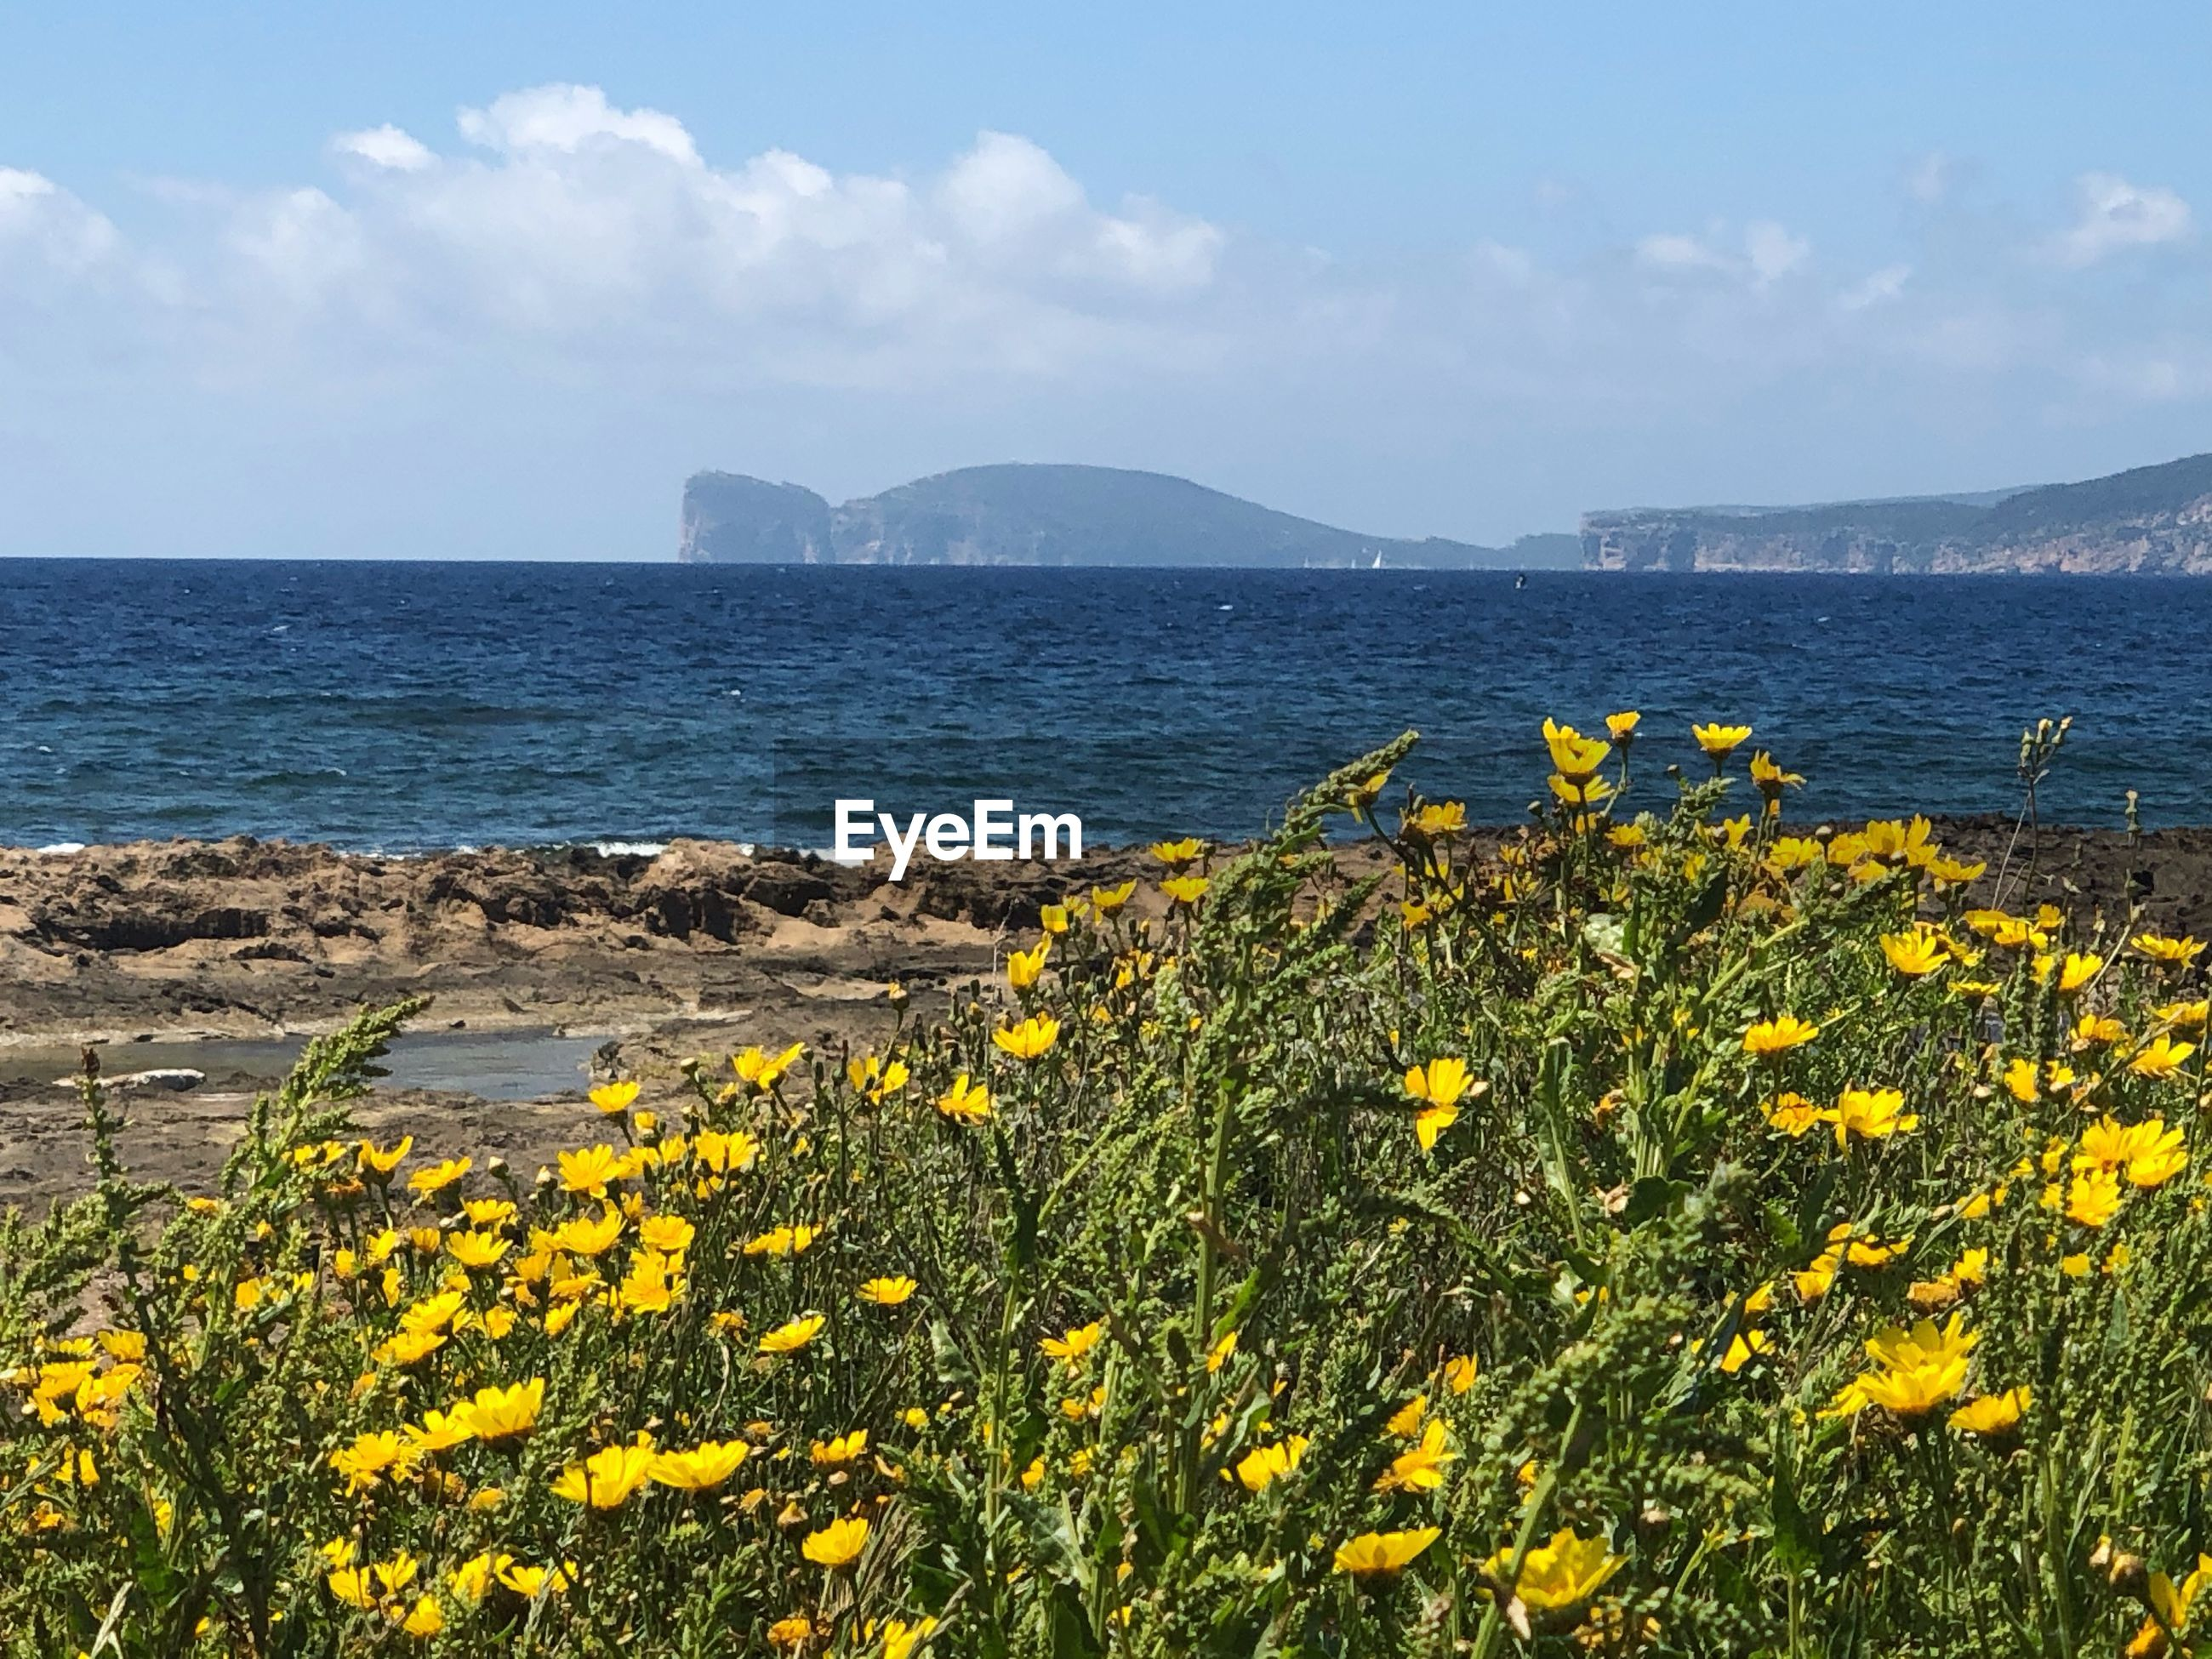 SCENIC VIEW OF SEA AND YELLOW FLOWERS AGAINST SKY